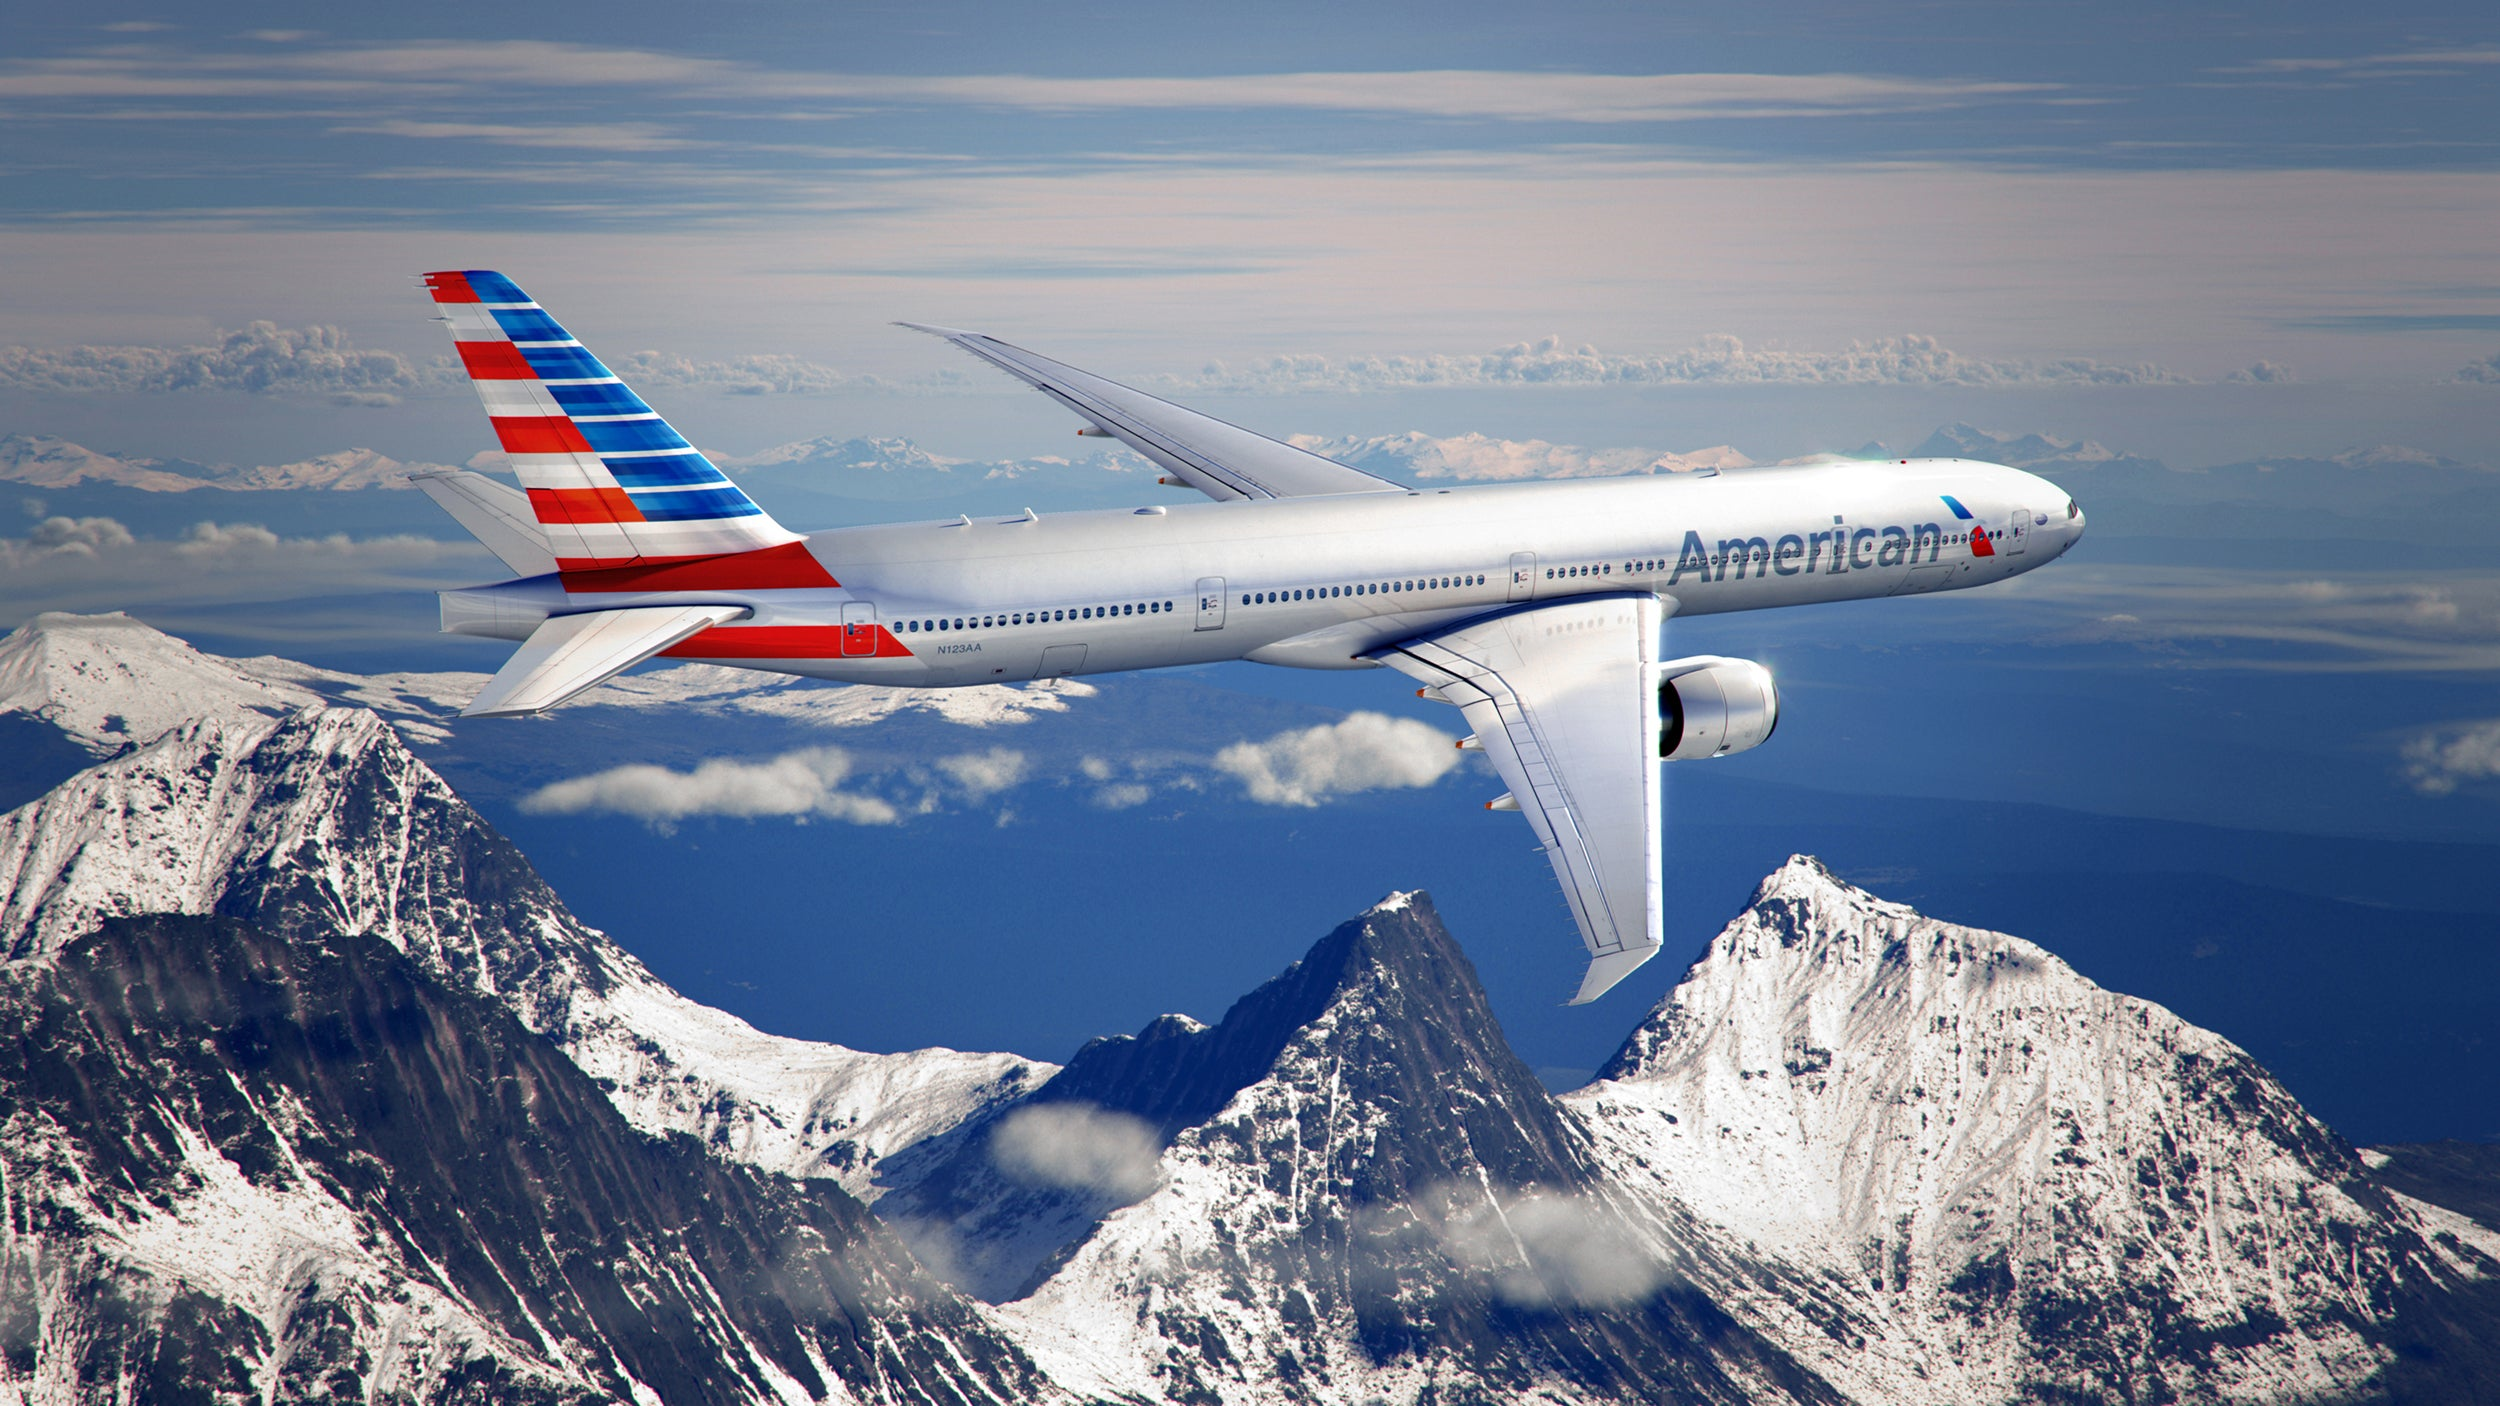 American Airlines Courts Danger With Partnership Strategy | The Motley Fool